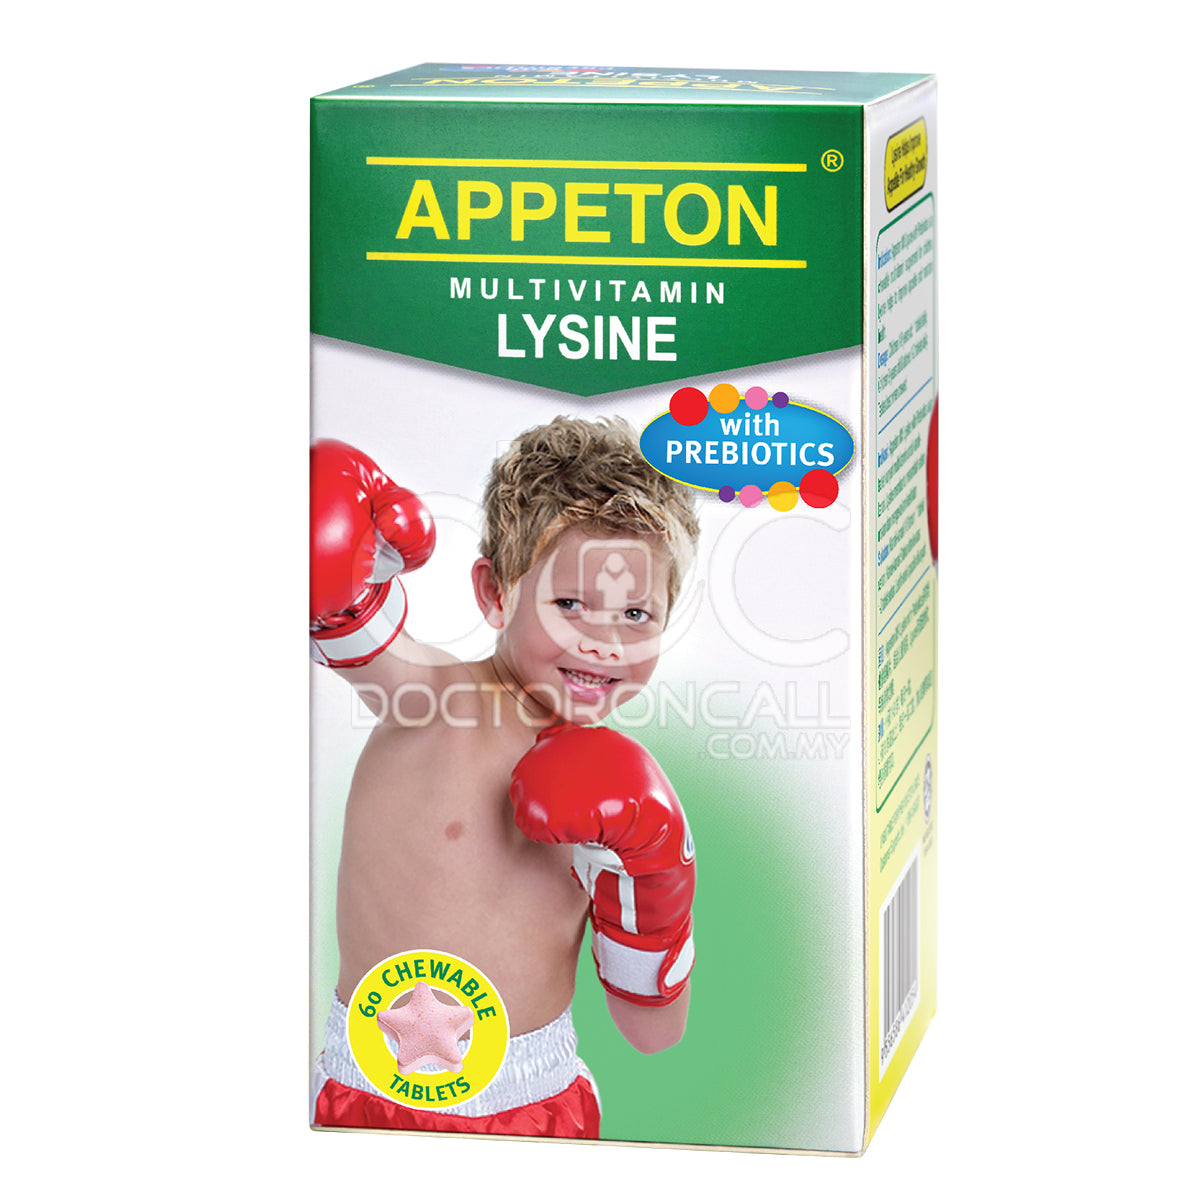 Appeton Multivitamin Lysine With Prebiotics Tablet - DoctorOnCall